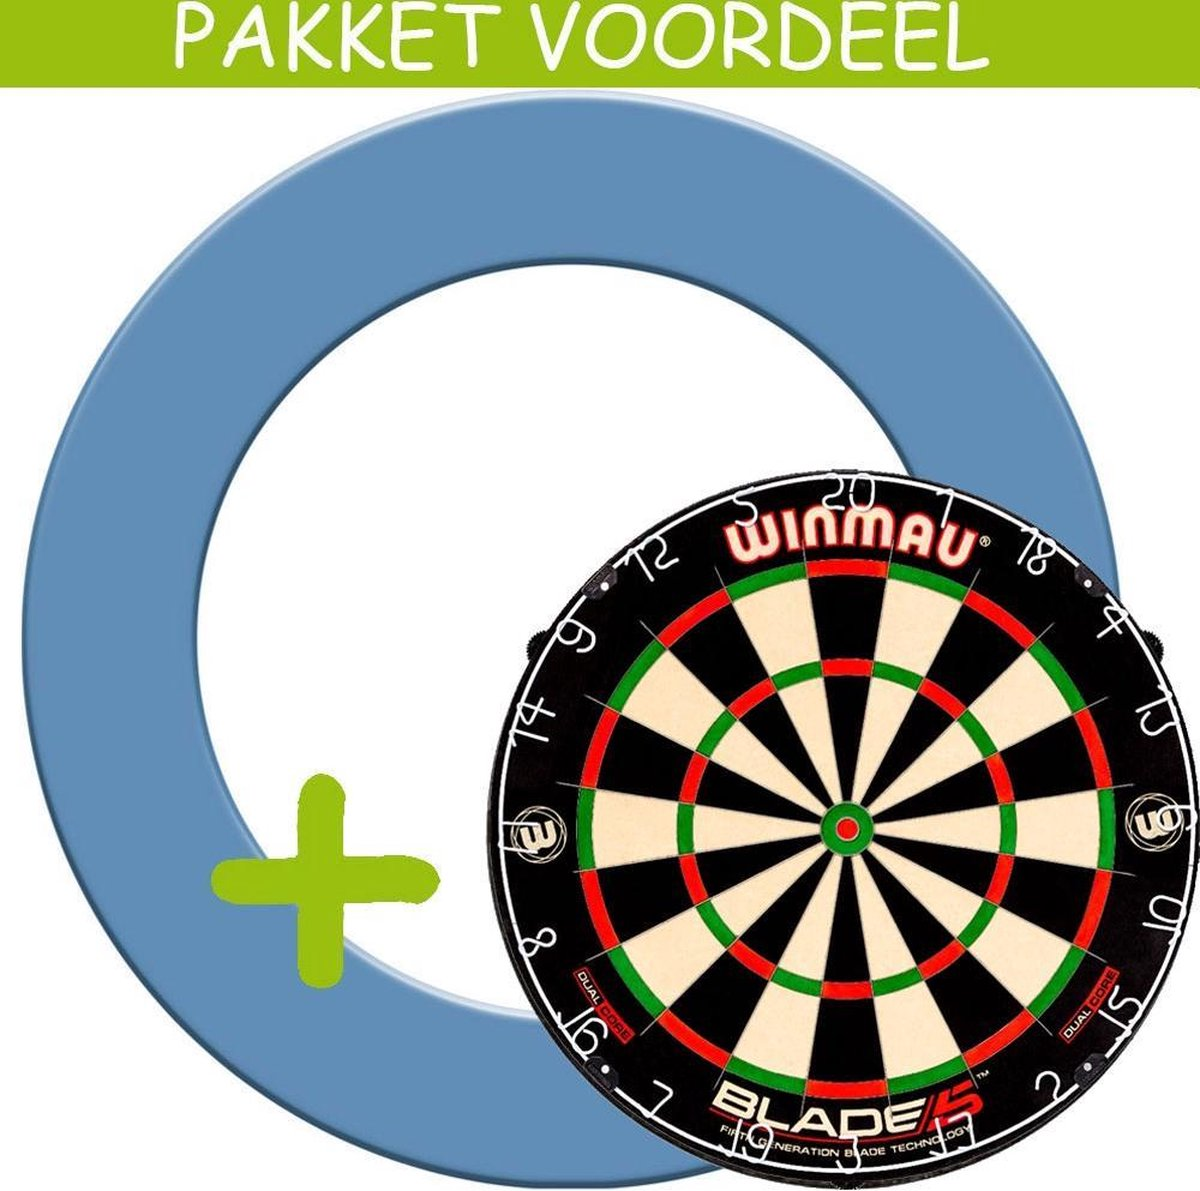 Dartbord Surround VoordeelPakket - Dual Core - Rubberen Surround-- (Aqua)